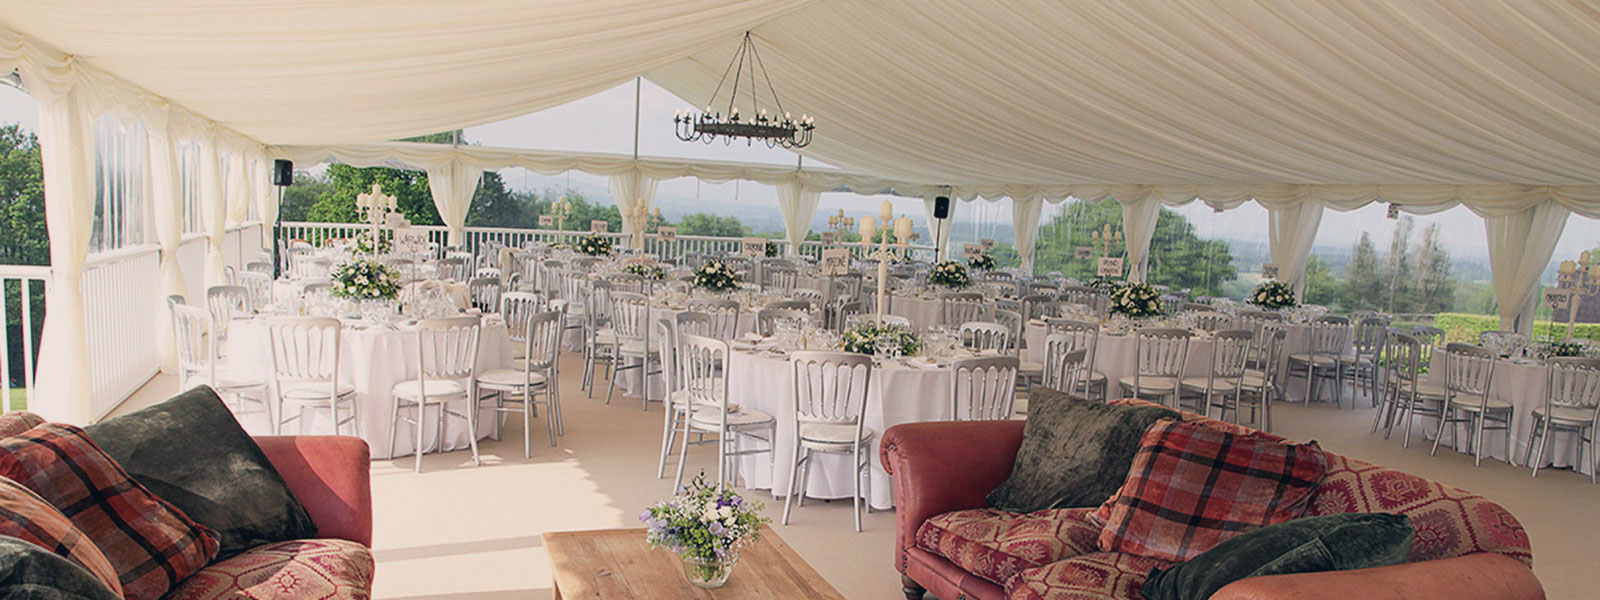 Monnow marquees marquee hire for celebrations and parties